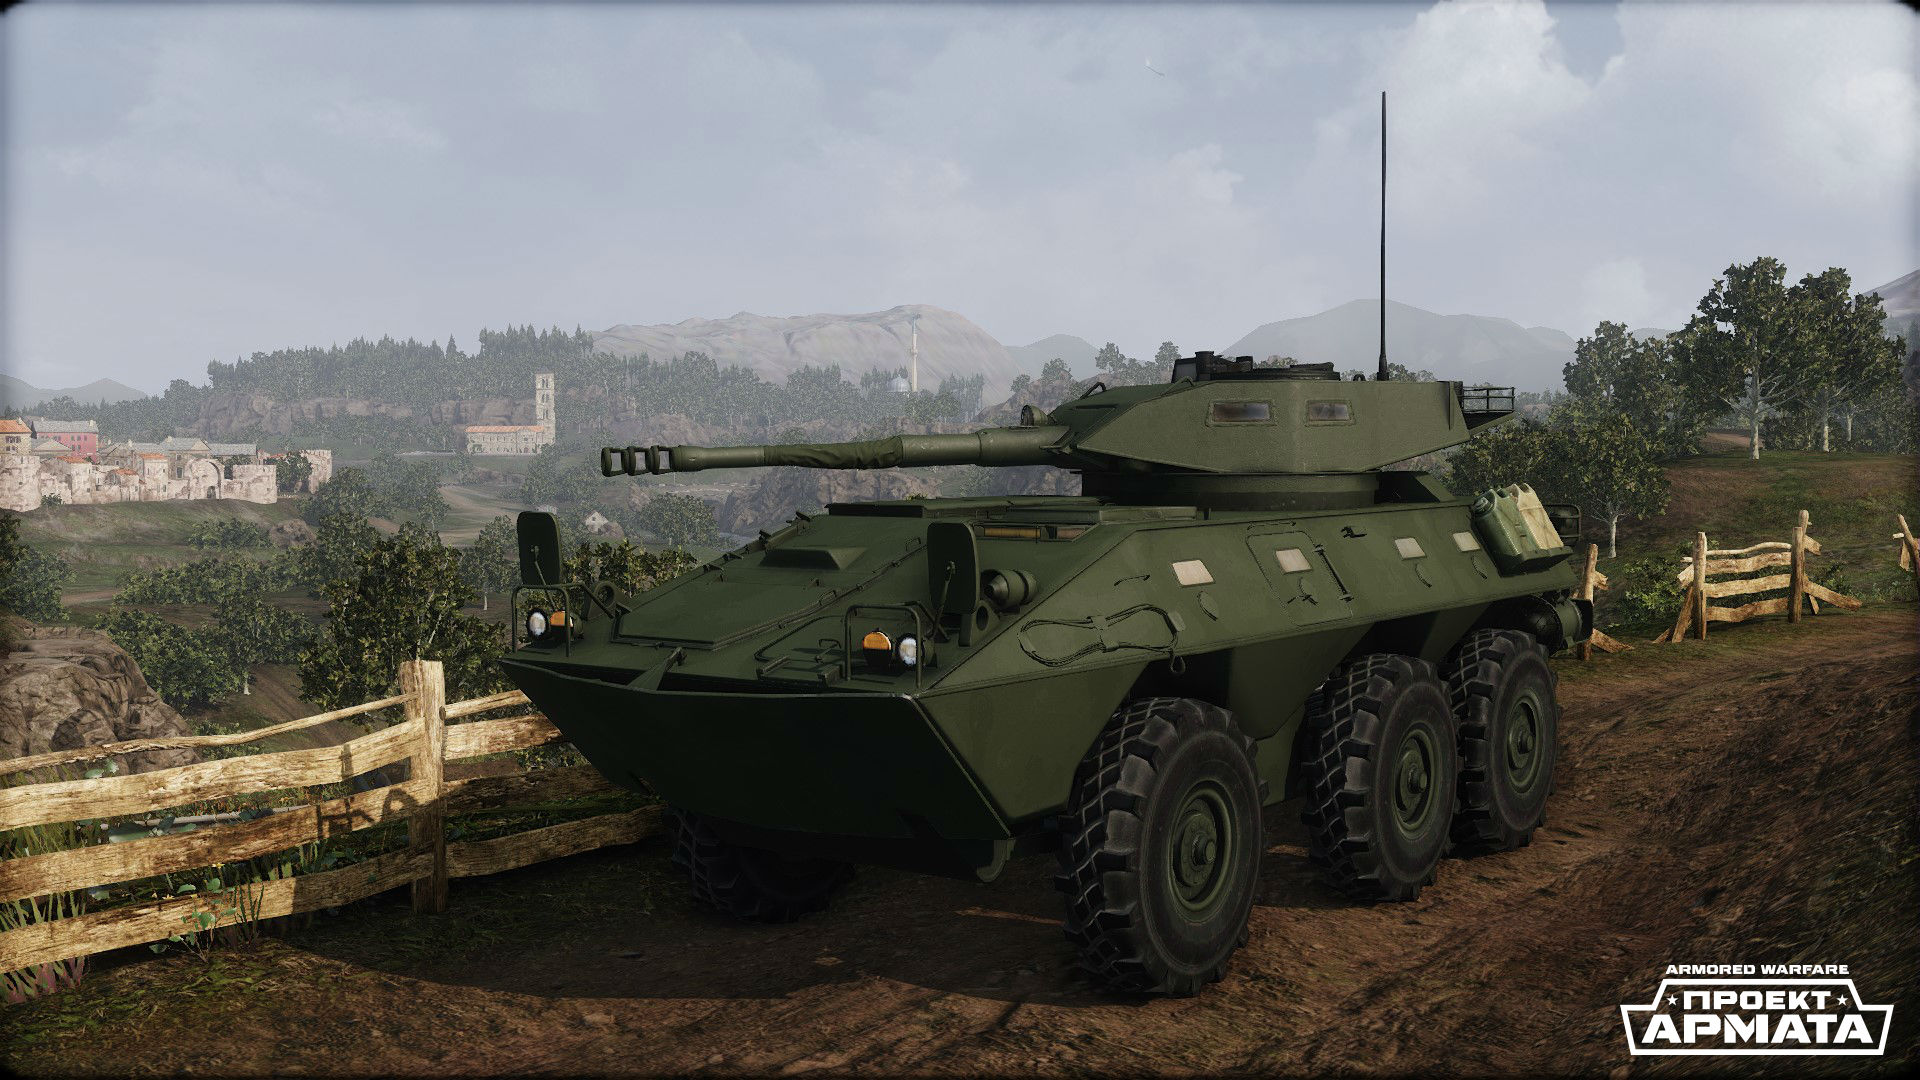 istrebiteli-tankov-armored-warfare-4